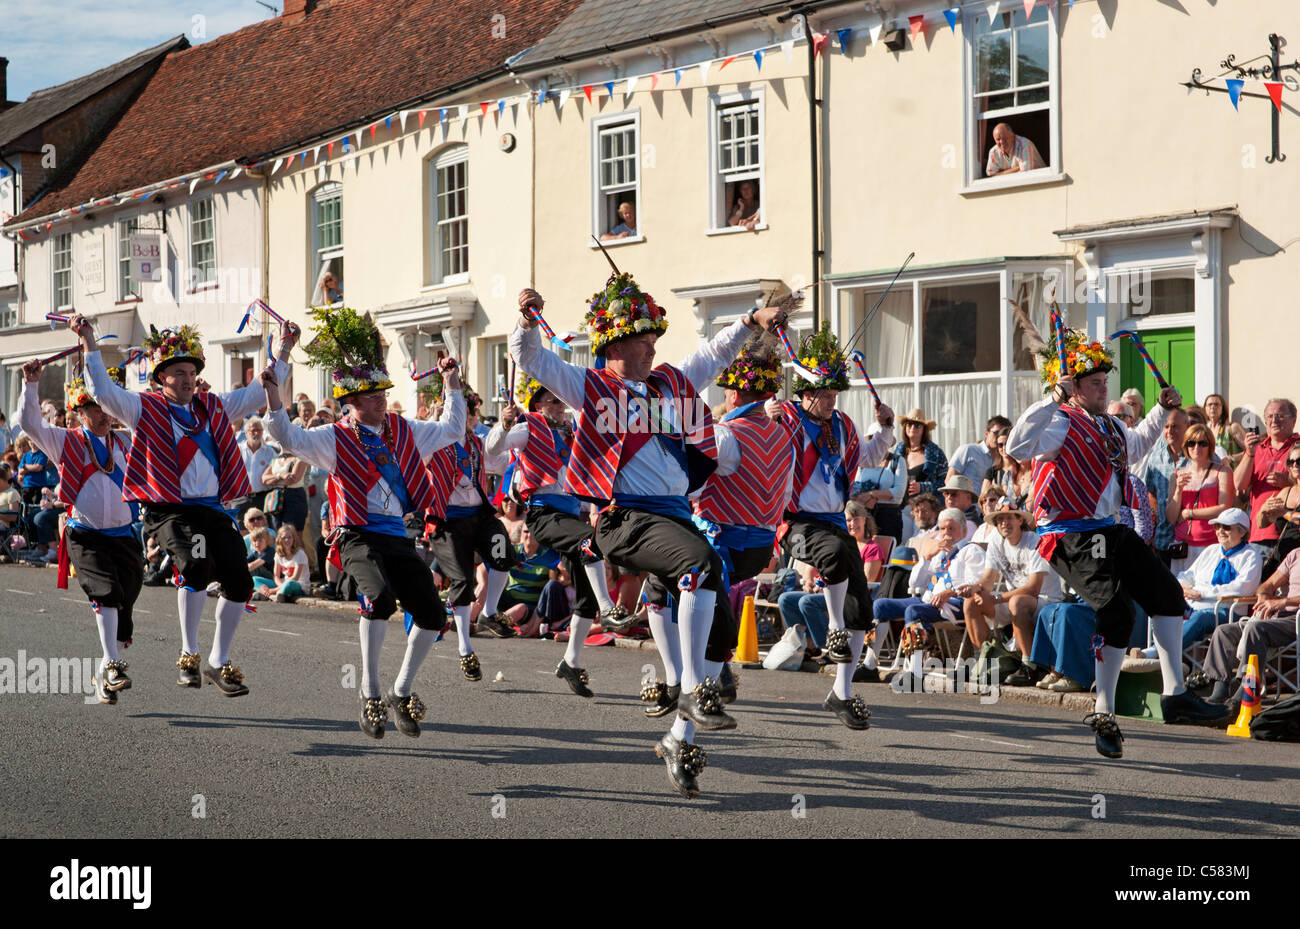 Morris Dancing at the Centenary Morris Dancing Festival in Thaxted, Essex, England, in 2011 - Stock Image